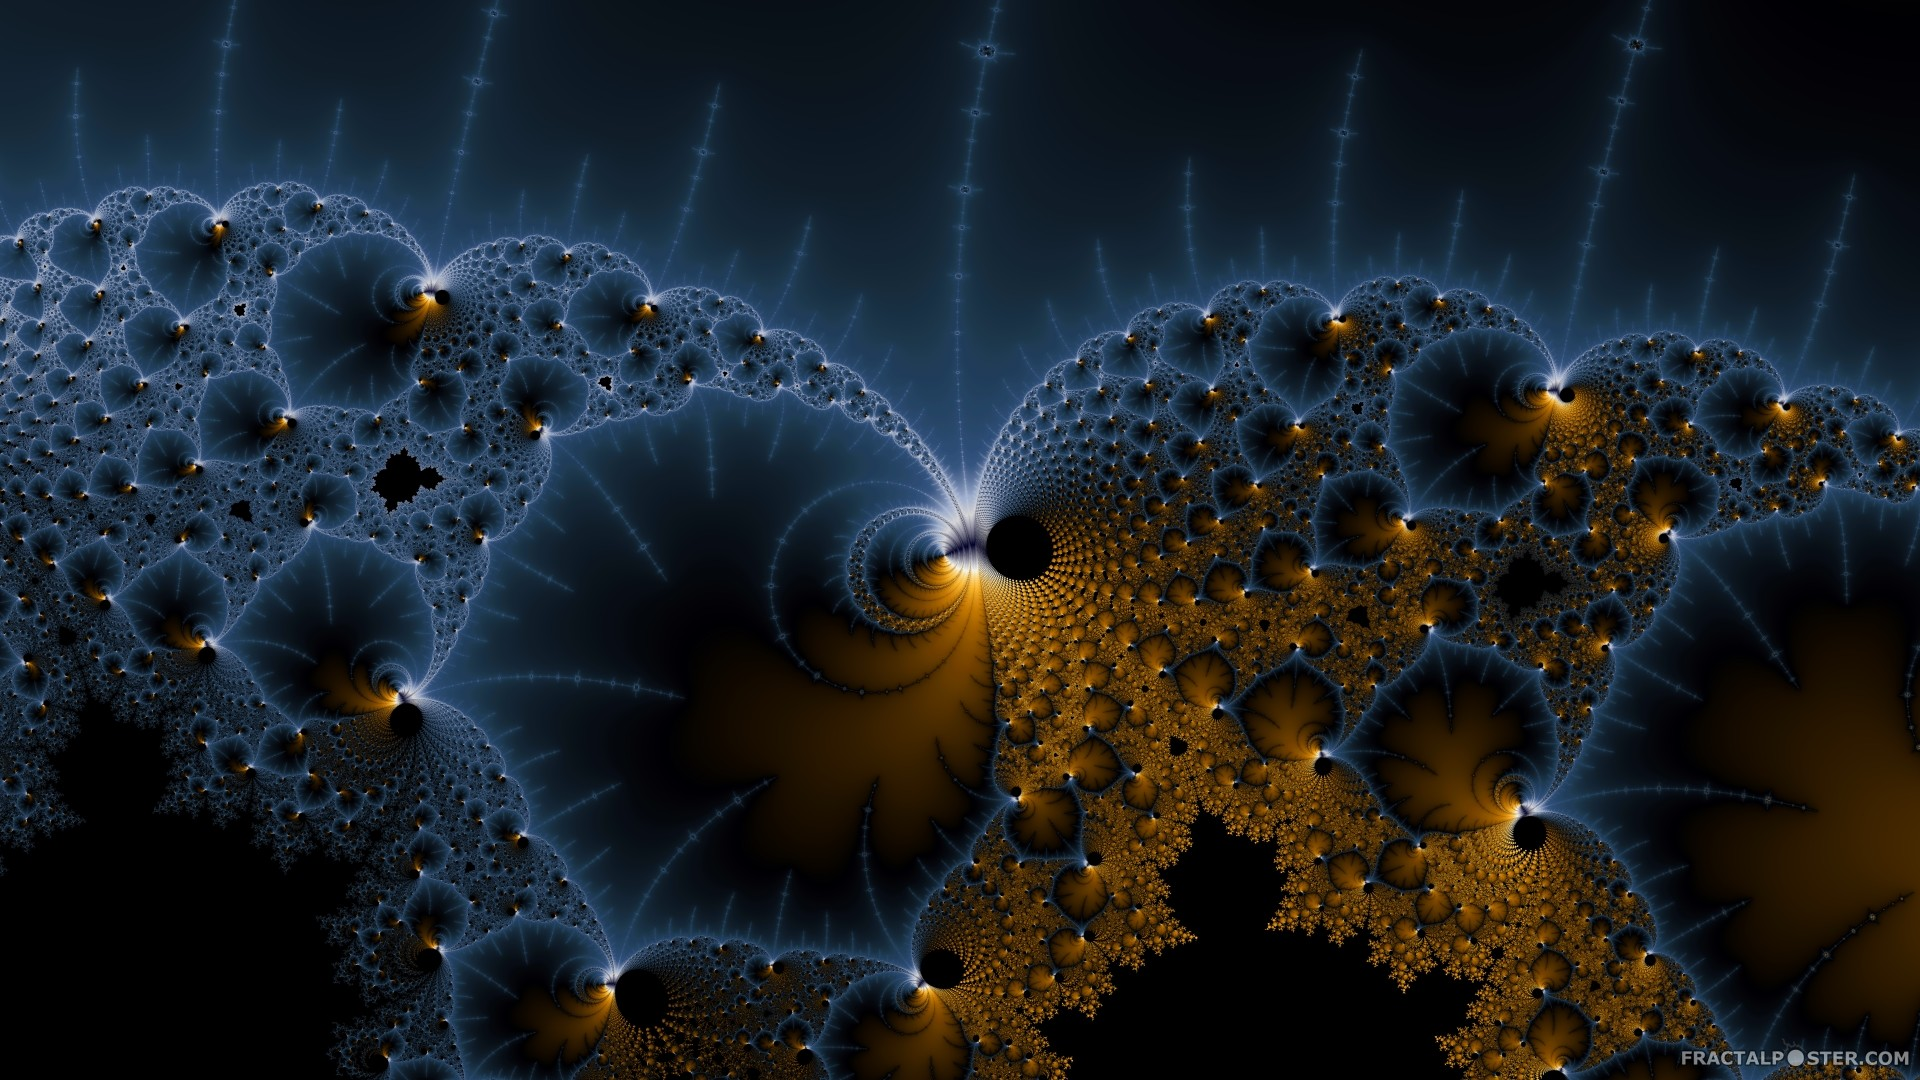 Fractal wallpapers requested by fractalposter. – BETA